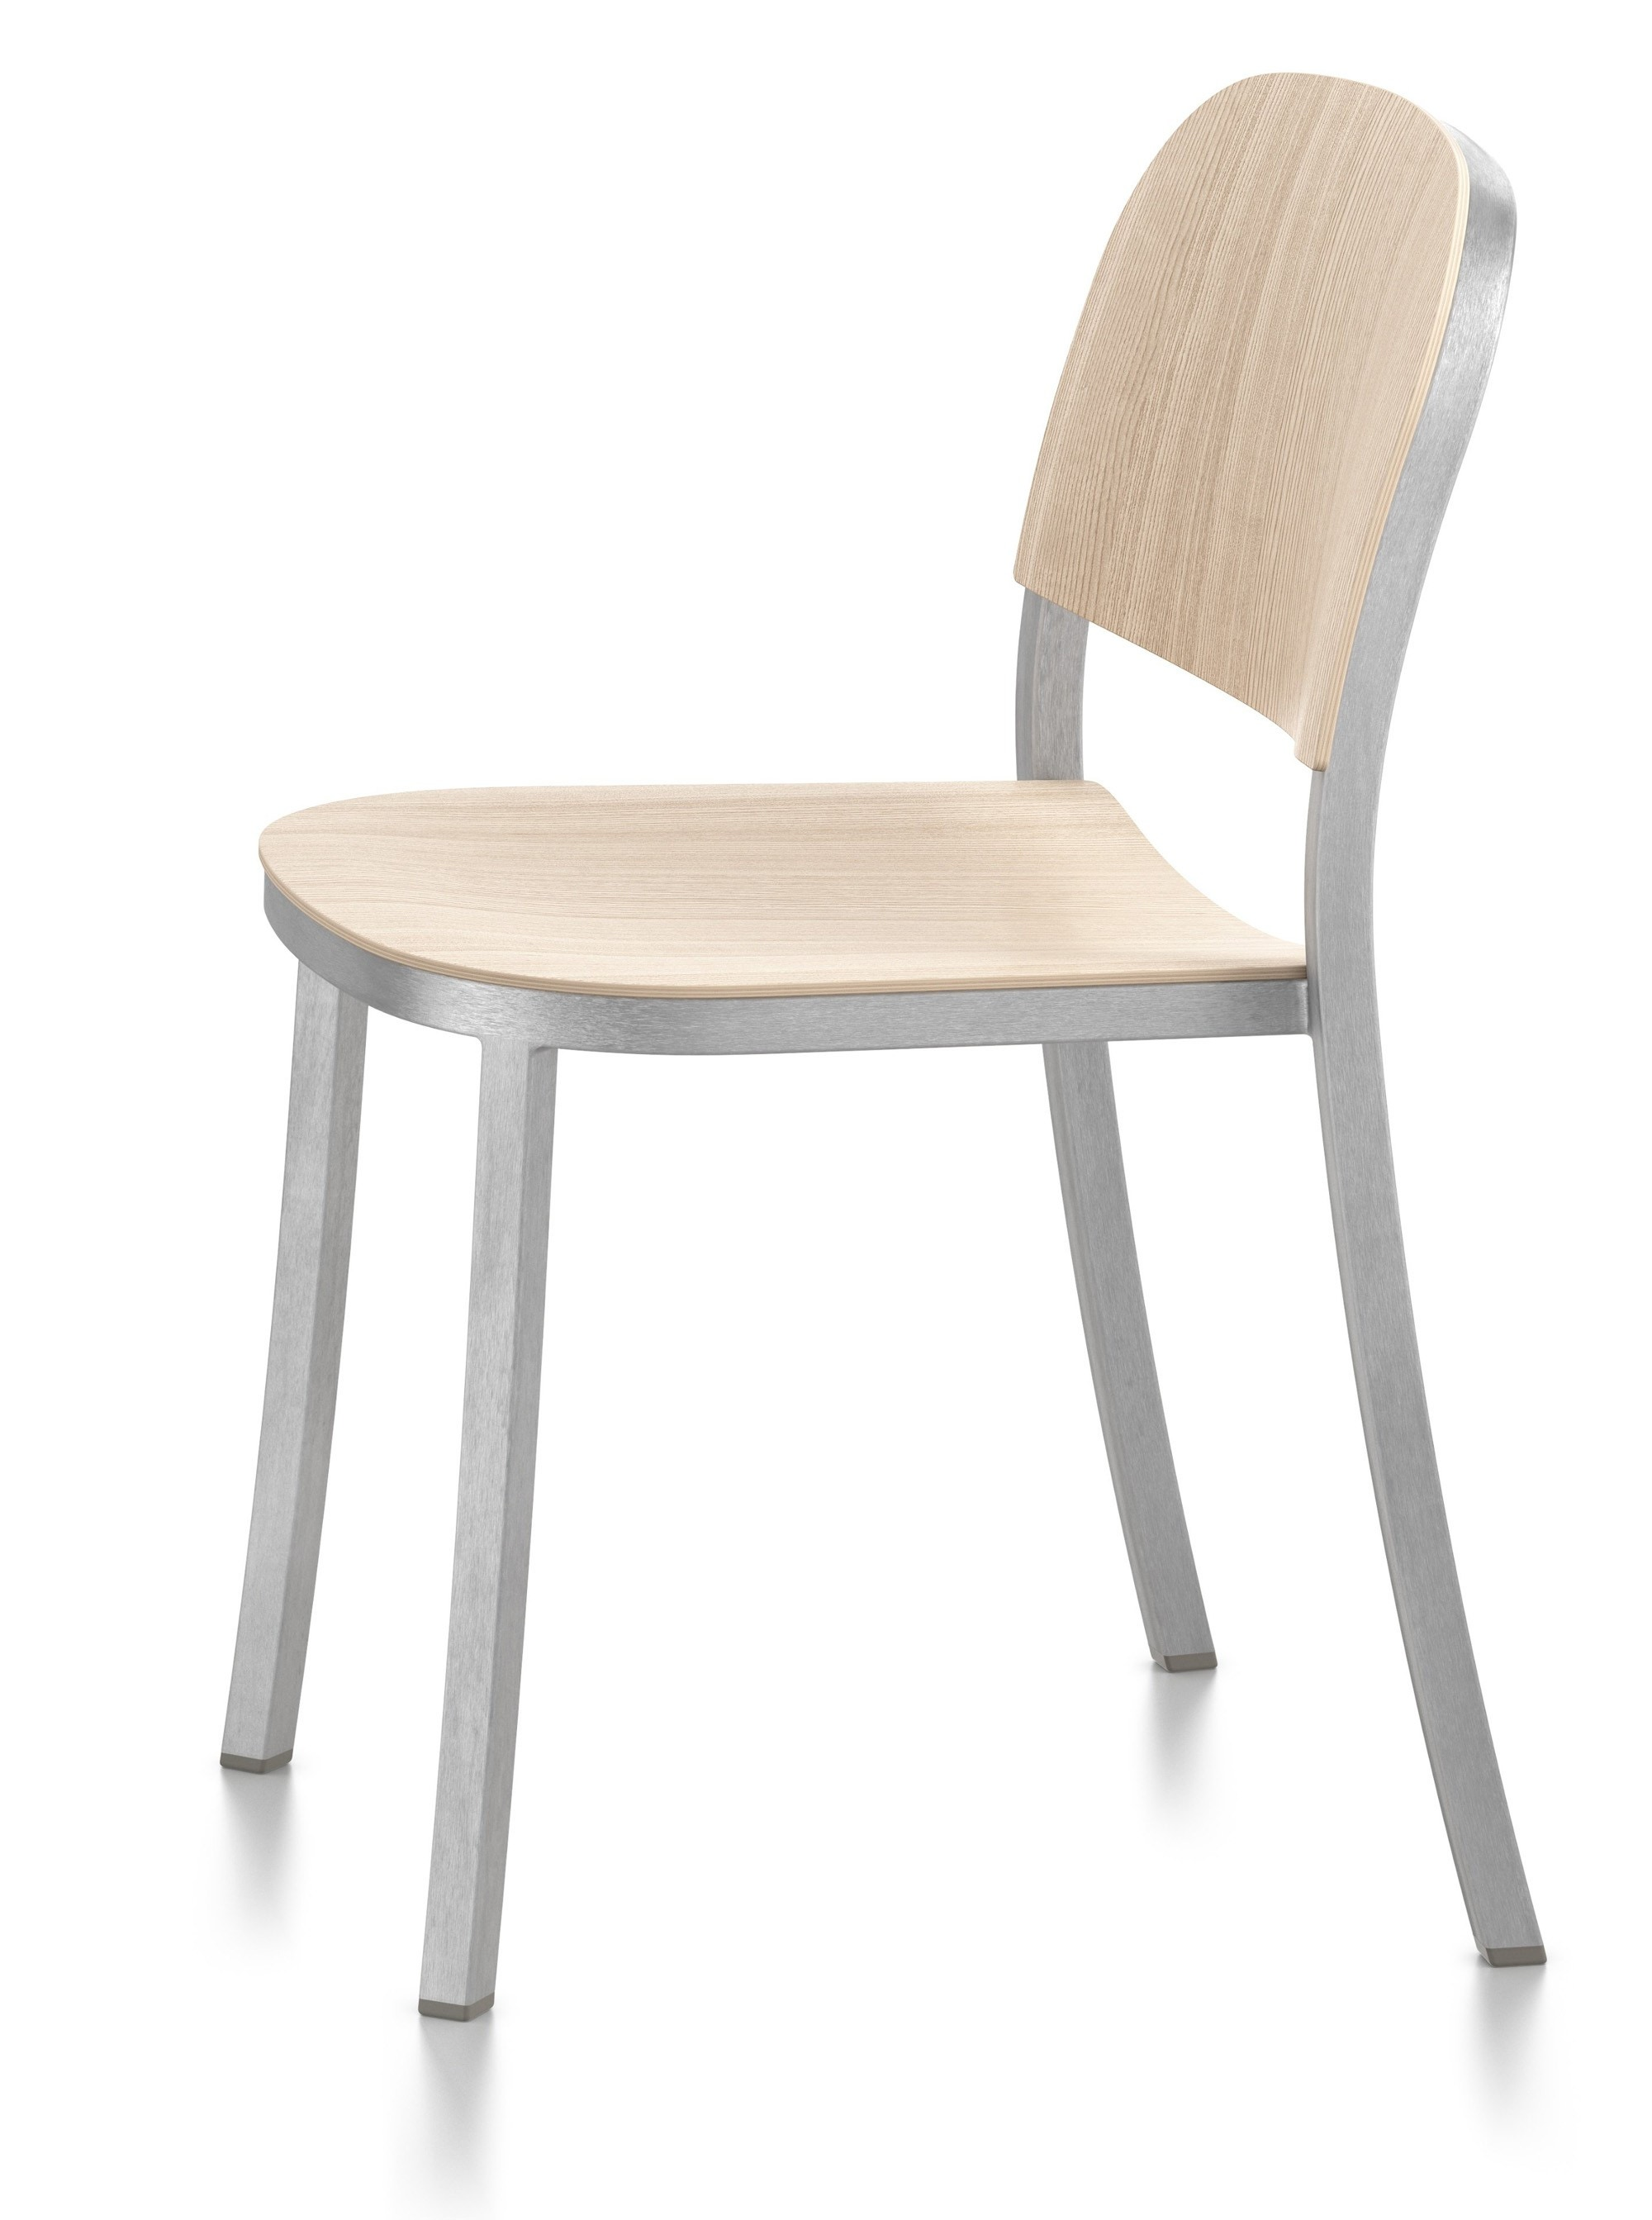 Emeco 1 INCH Stacking Side Chair By Jasper Morrison (On Production Hold)